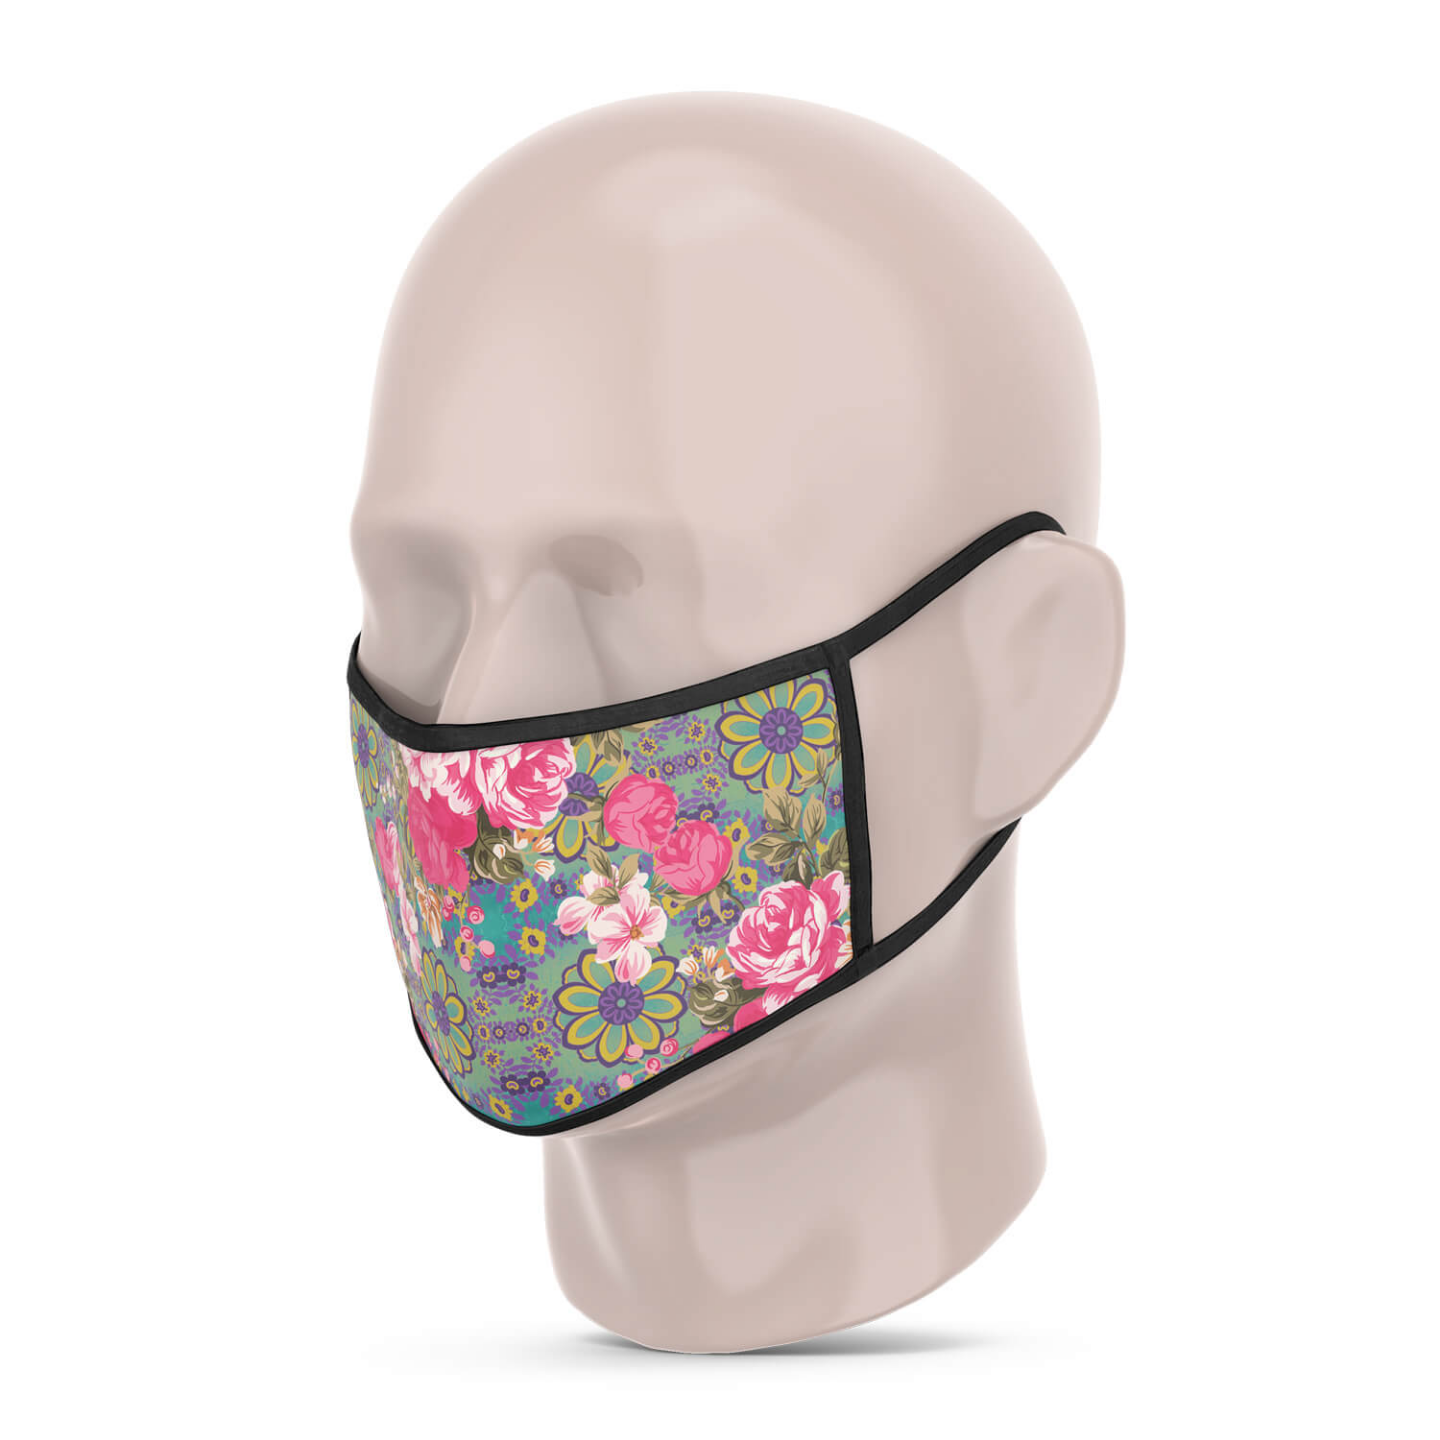 3 Layer Printed Protective Face Mask - Pack of 3 Pink-Sea Green-Yellow Pink